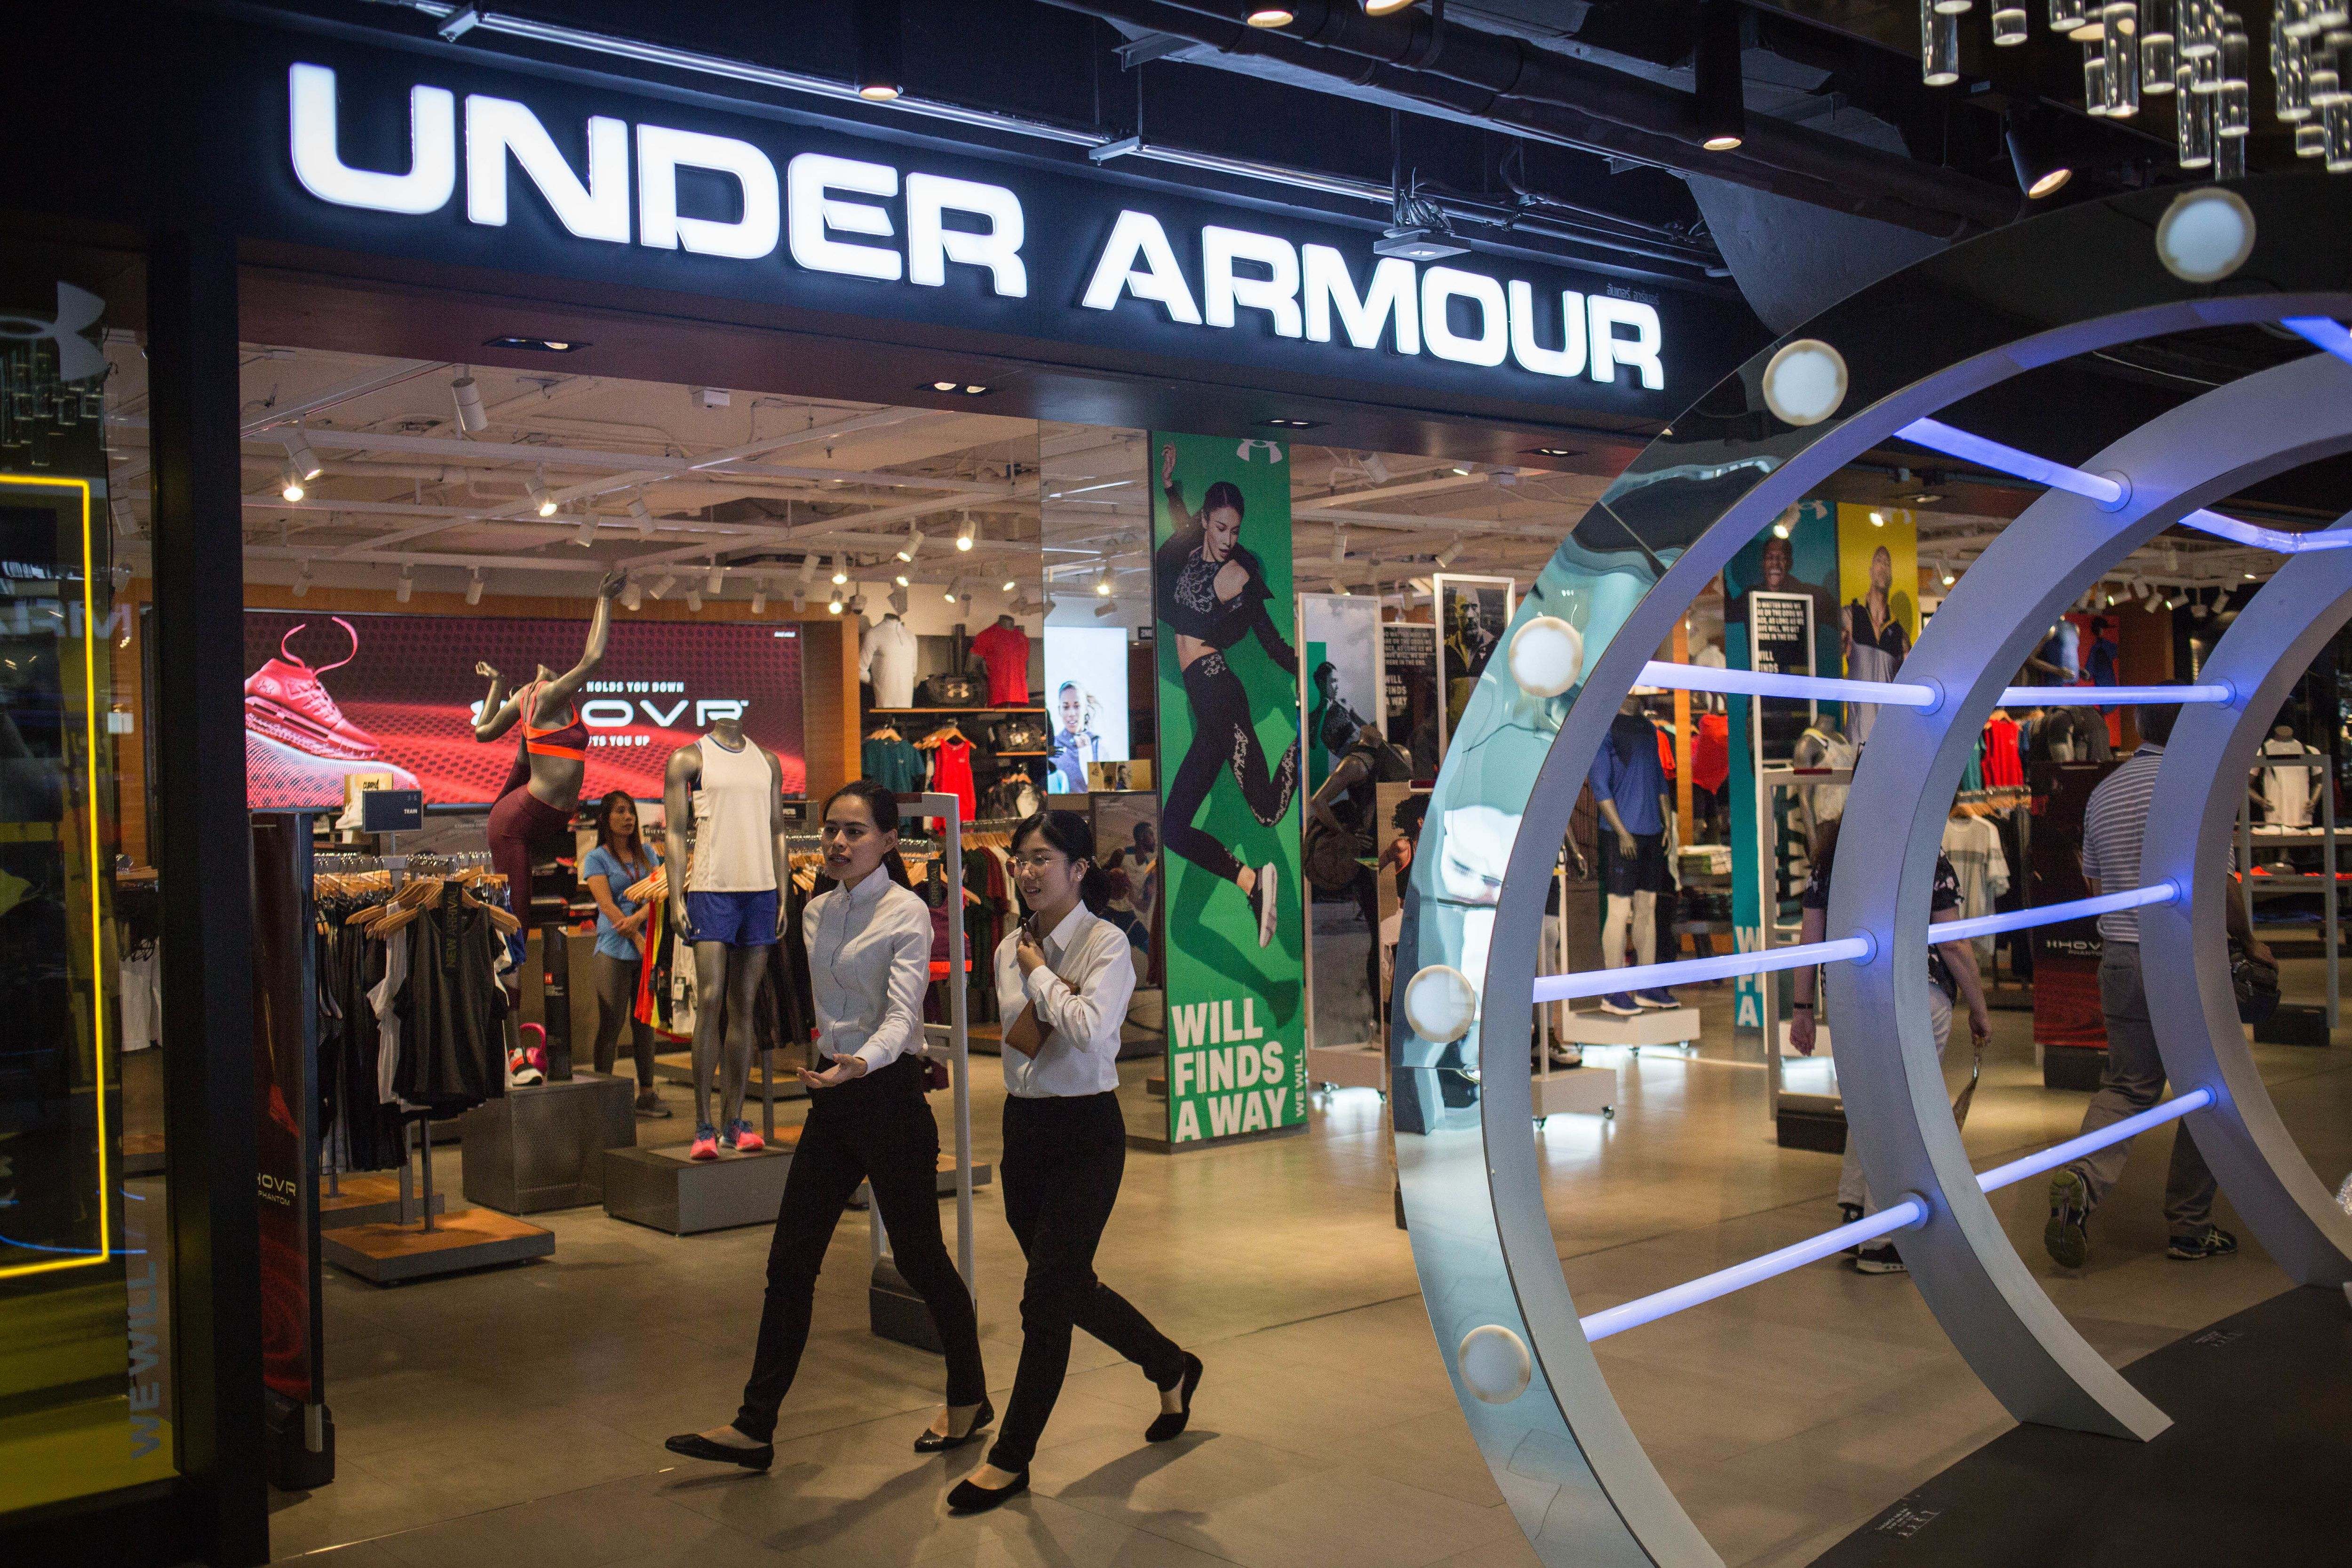 National Lacrosse League strikes a three-year deal with Under Armour as it expands sport in US